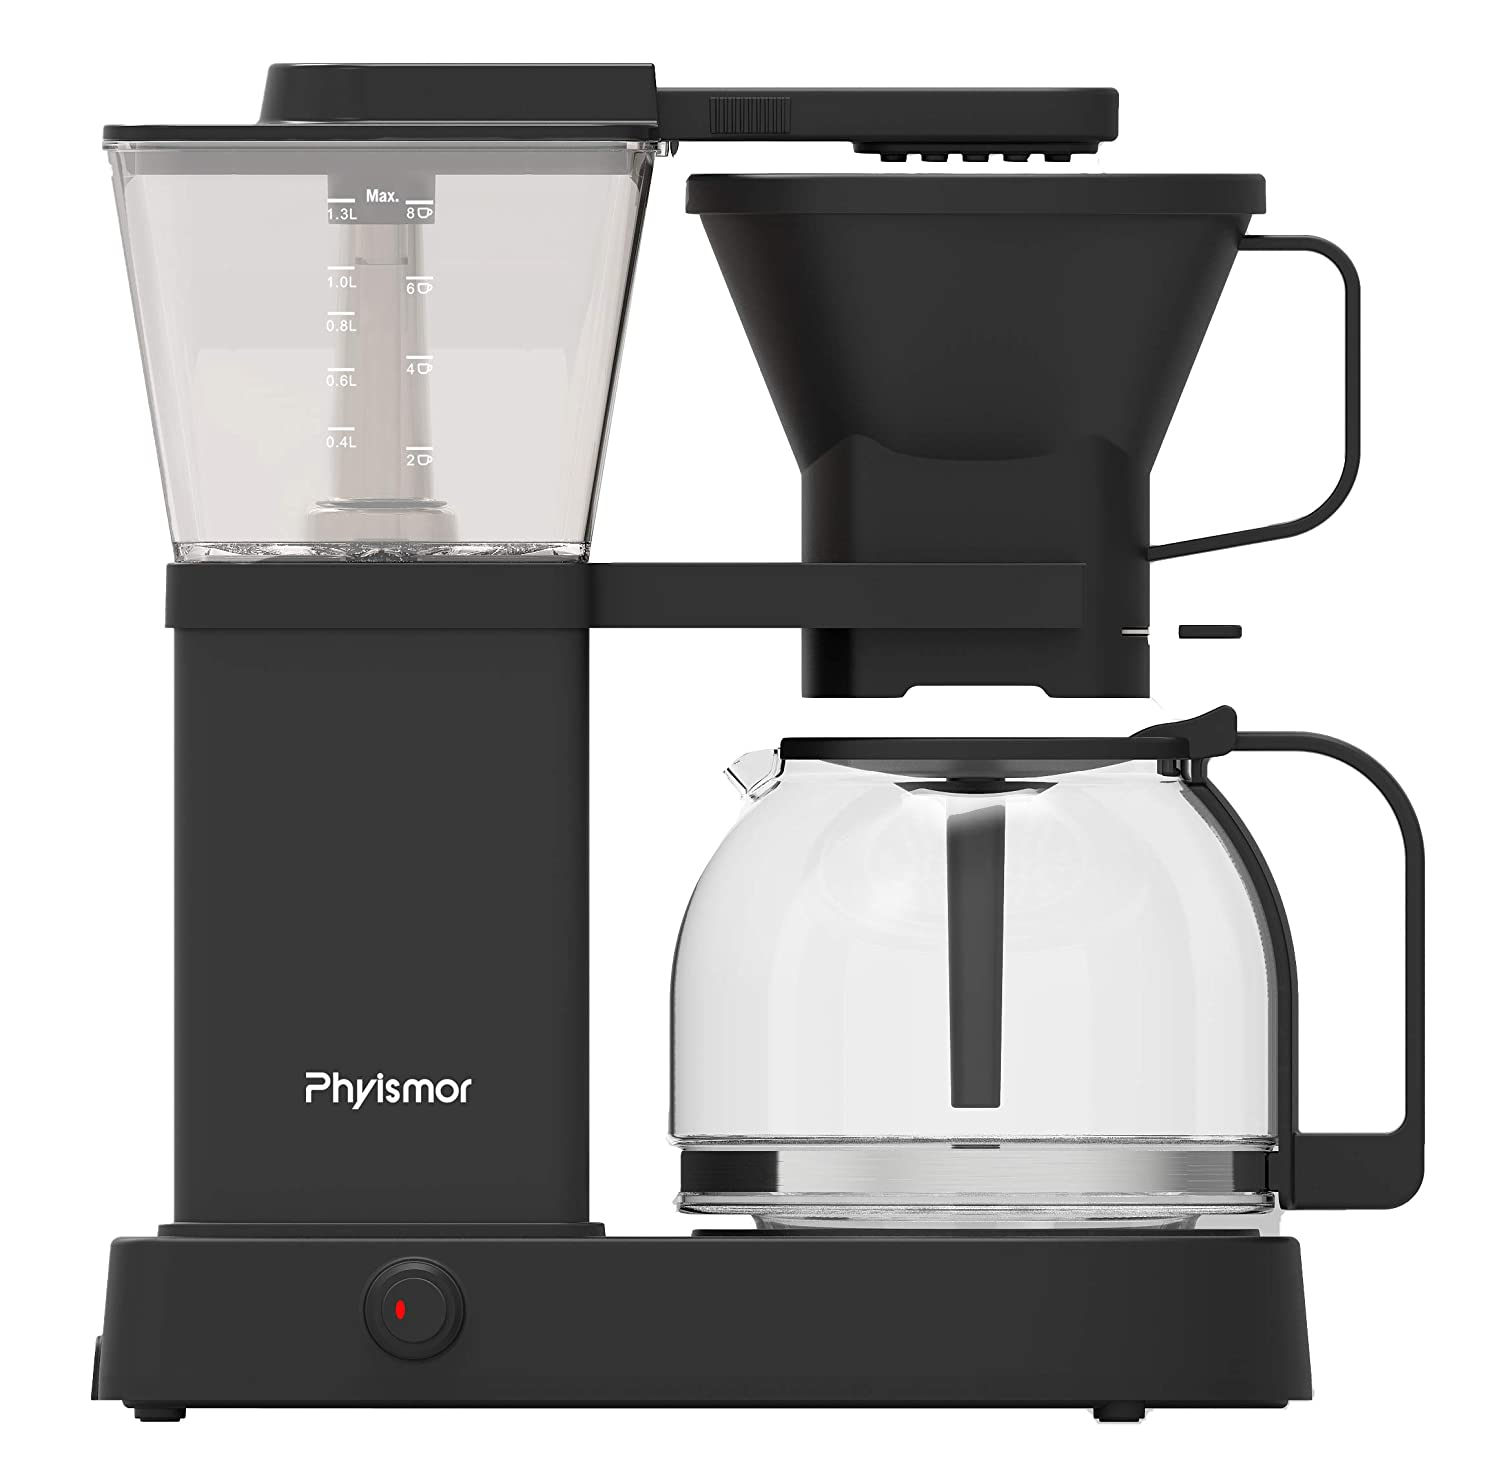 Phyismor Coffee Brewer 8-Cup, Automatic Drip-Stop Coffee Maker, Borosilicate Glass Carafe, Pre-Infusion Mode